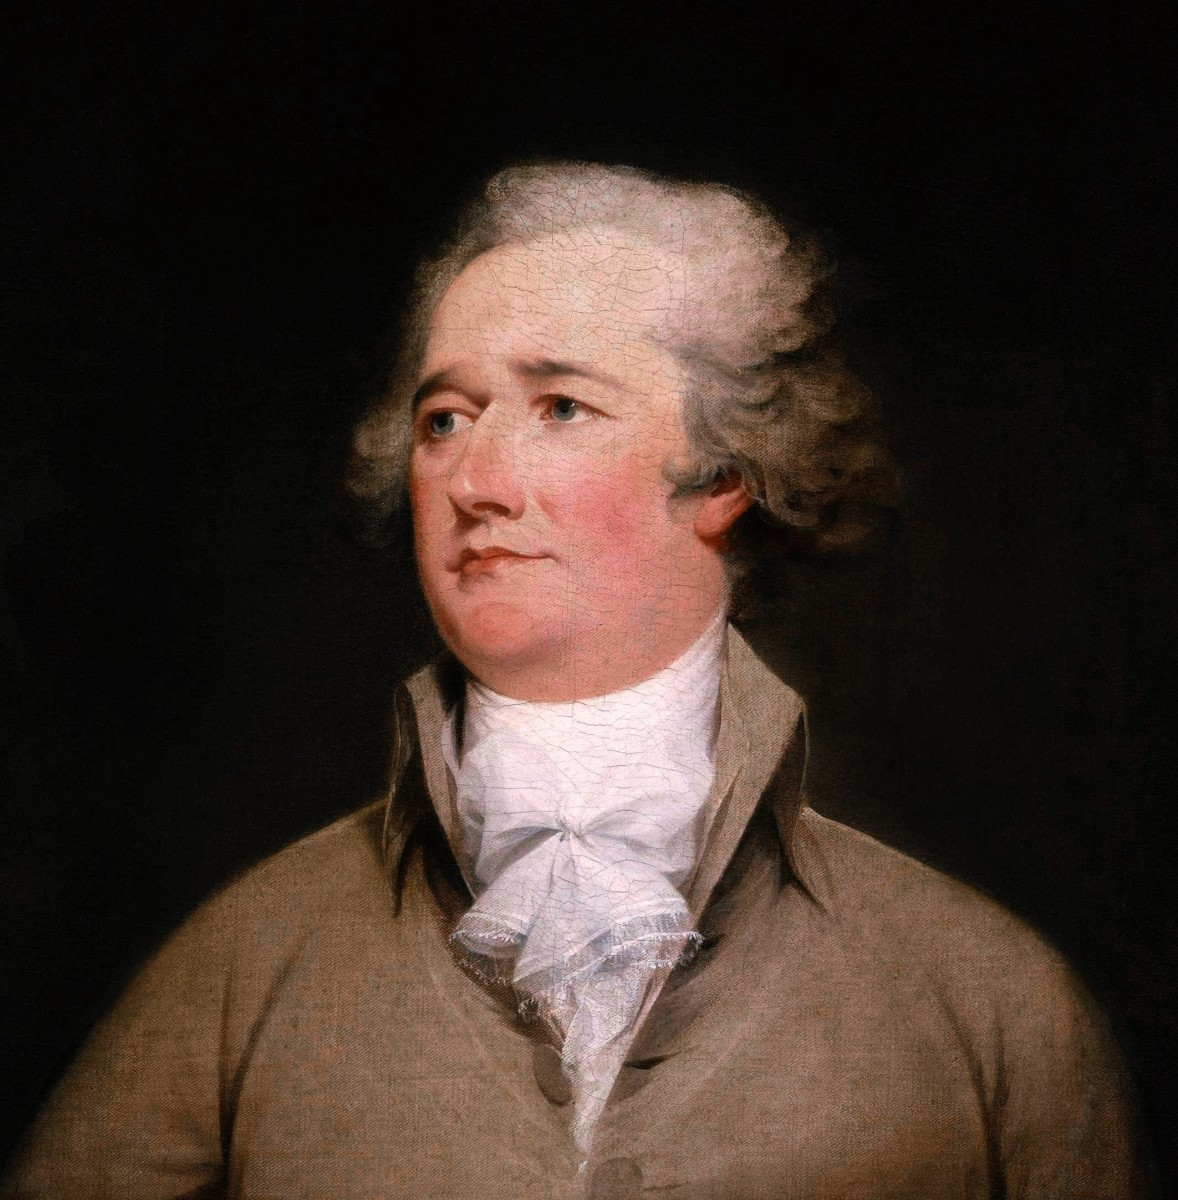 alexander hamilton and his views and principles In my post alexander hamilton's hamilton did not view faith as most of his rivalries with people originated out of his principles and stands.